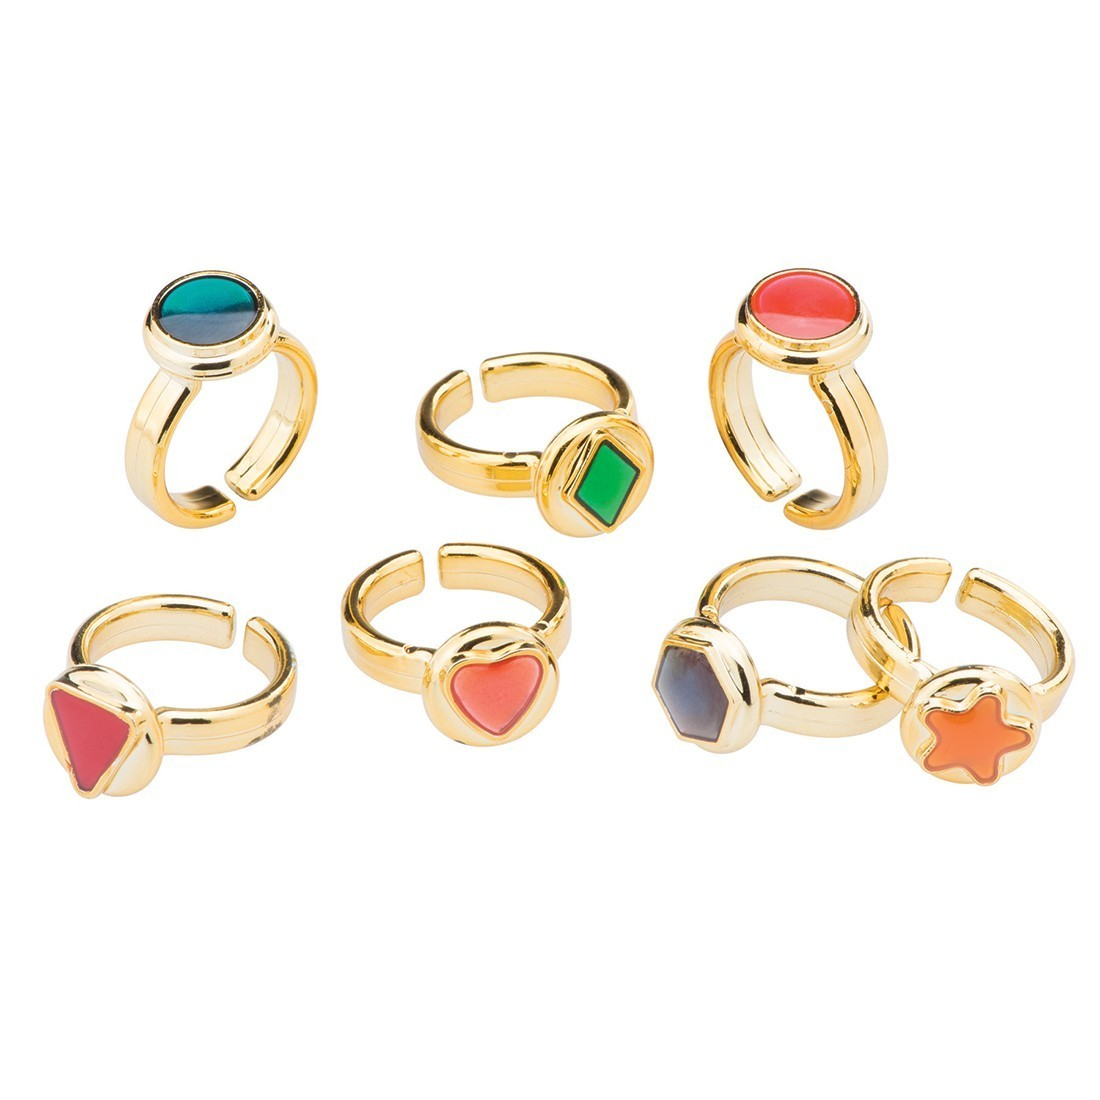 Assorted Glamour Rings [image]